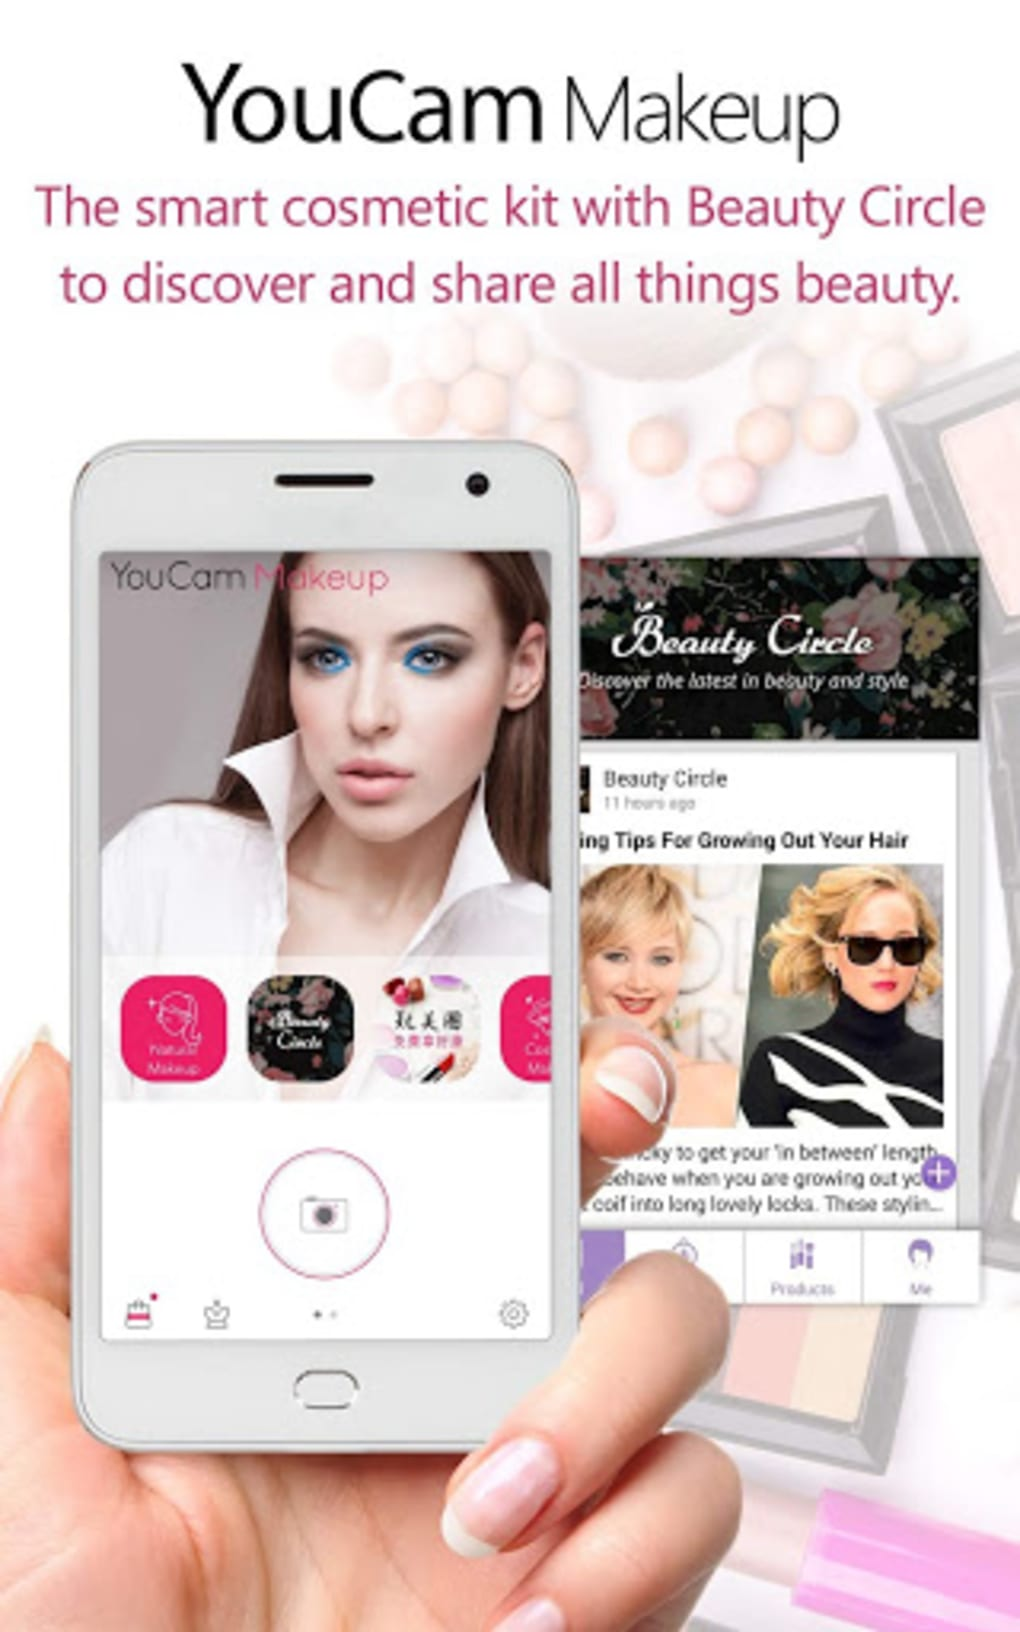 YouCam Makeup- Makeover Studio for Android - Download